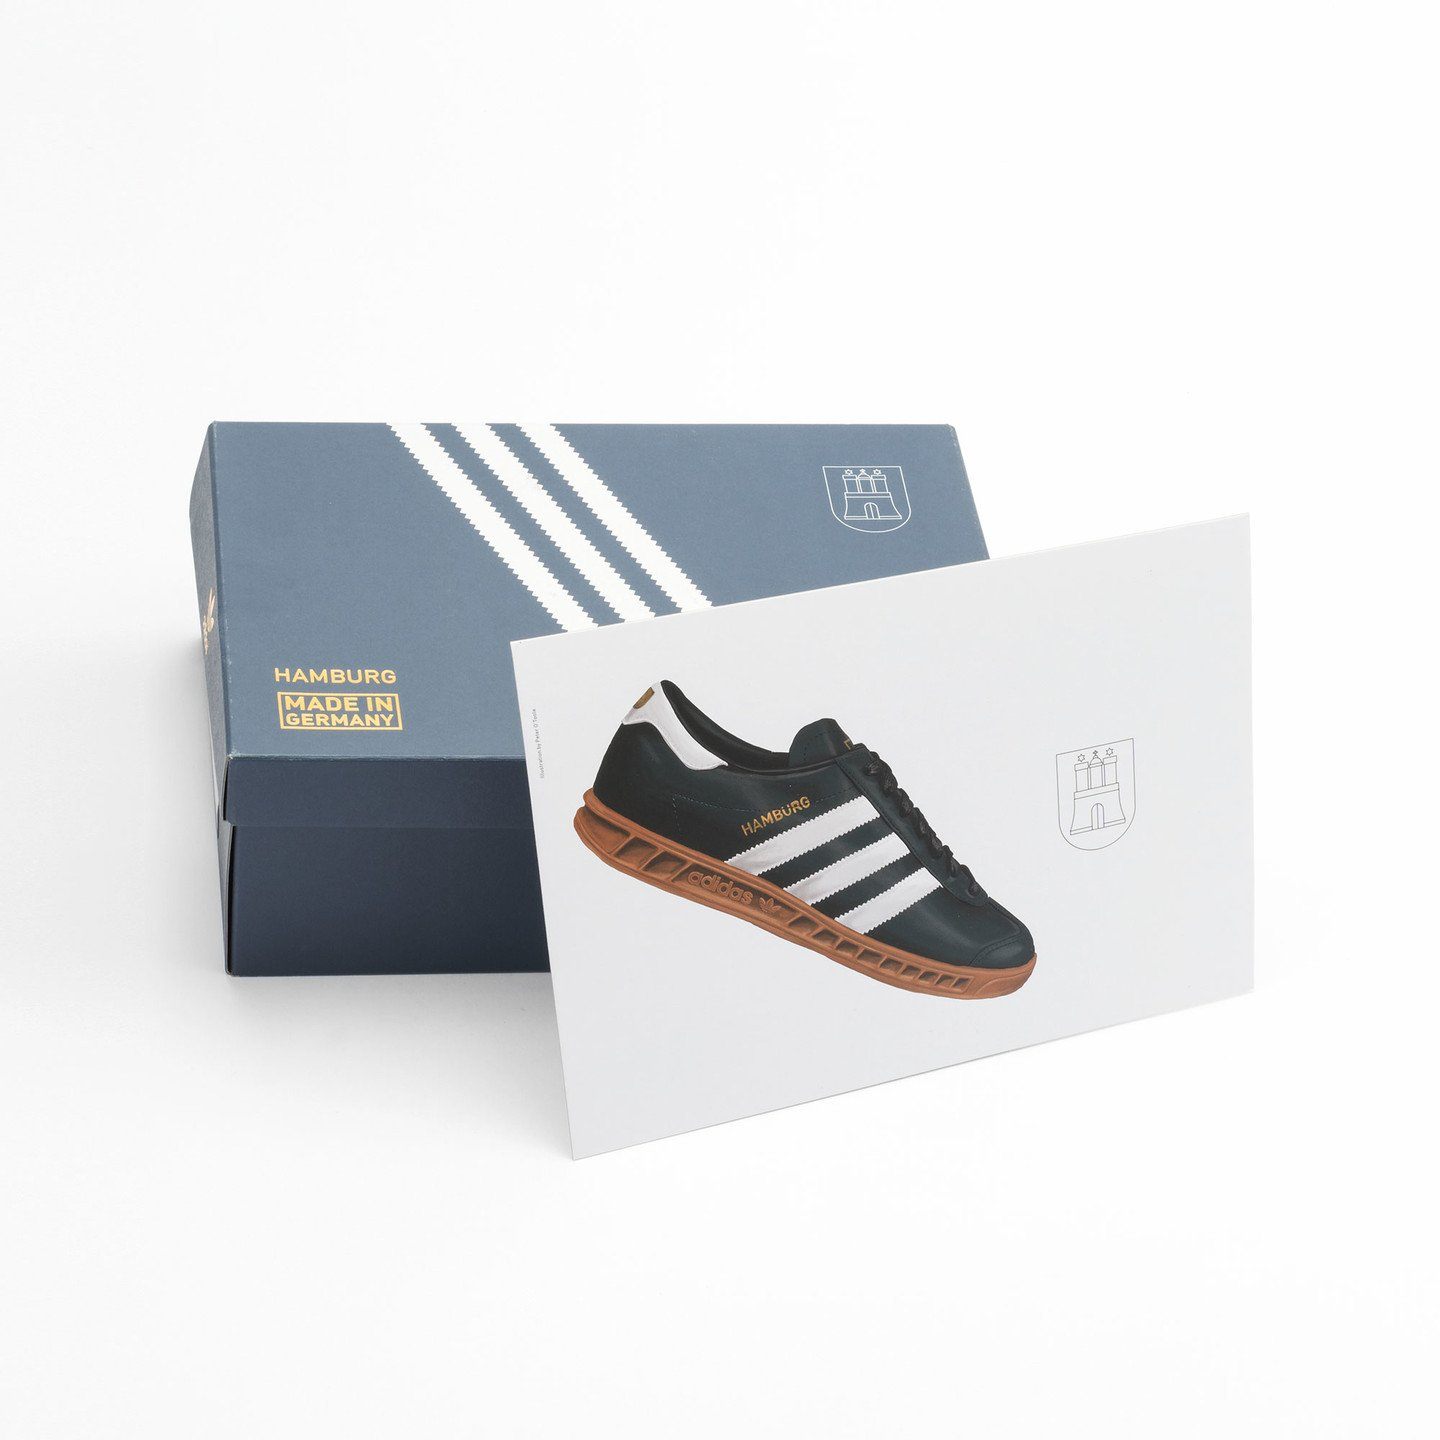 Adidas Hamburg - Made in Germany Navy / White / Gold / Gum S31602-45.33